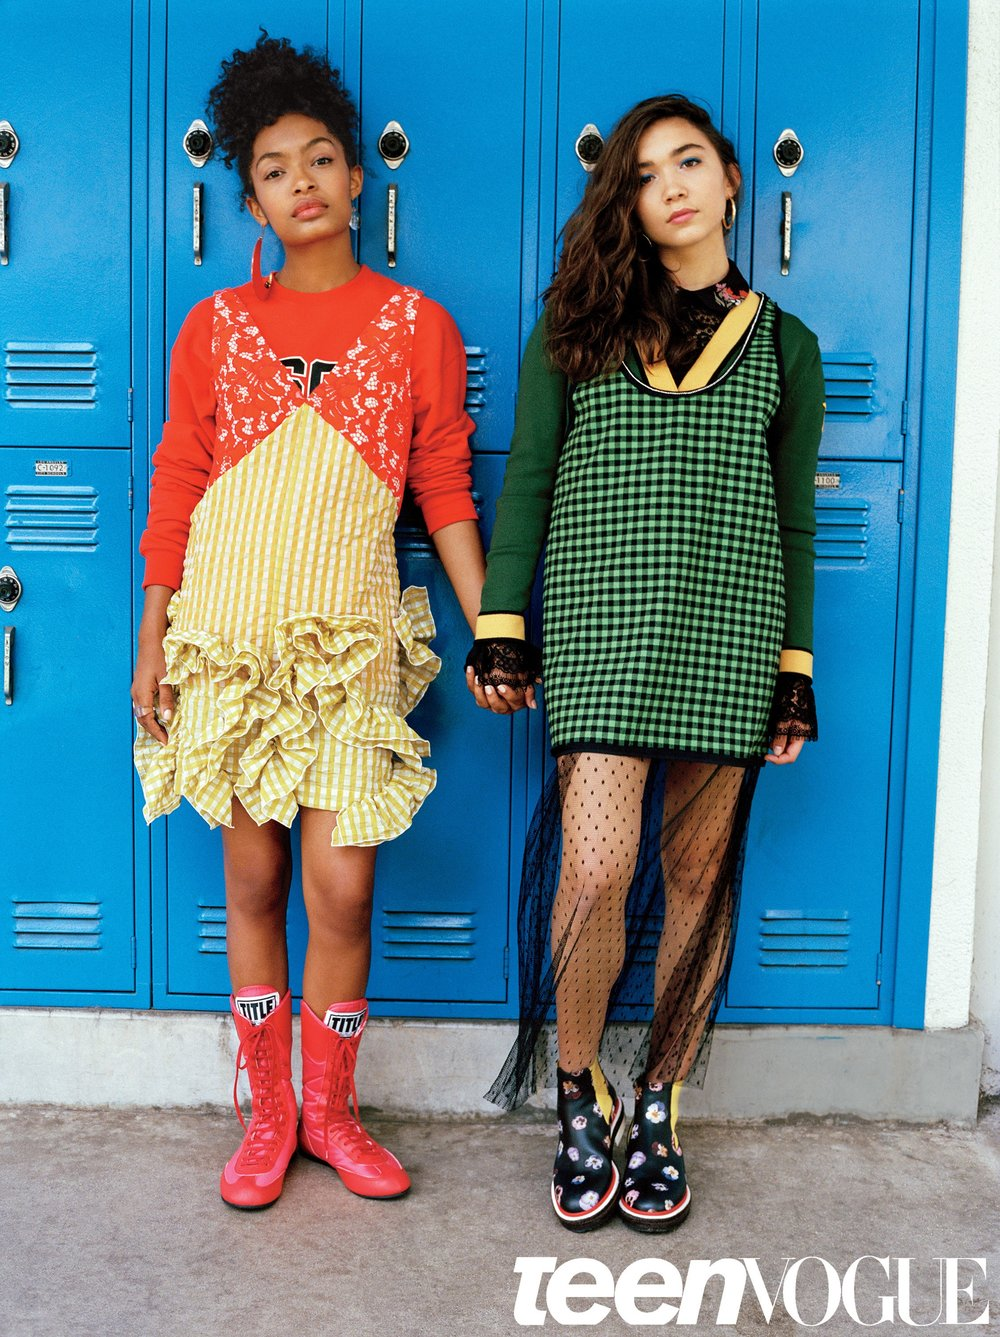 Image: Yara Shahidi and Rowan Blanchard for Teen Vogue